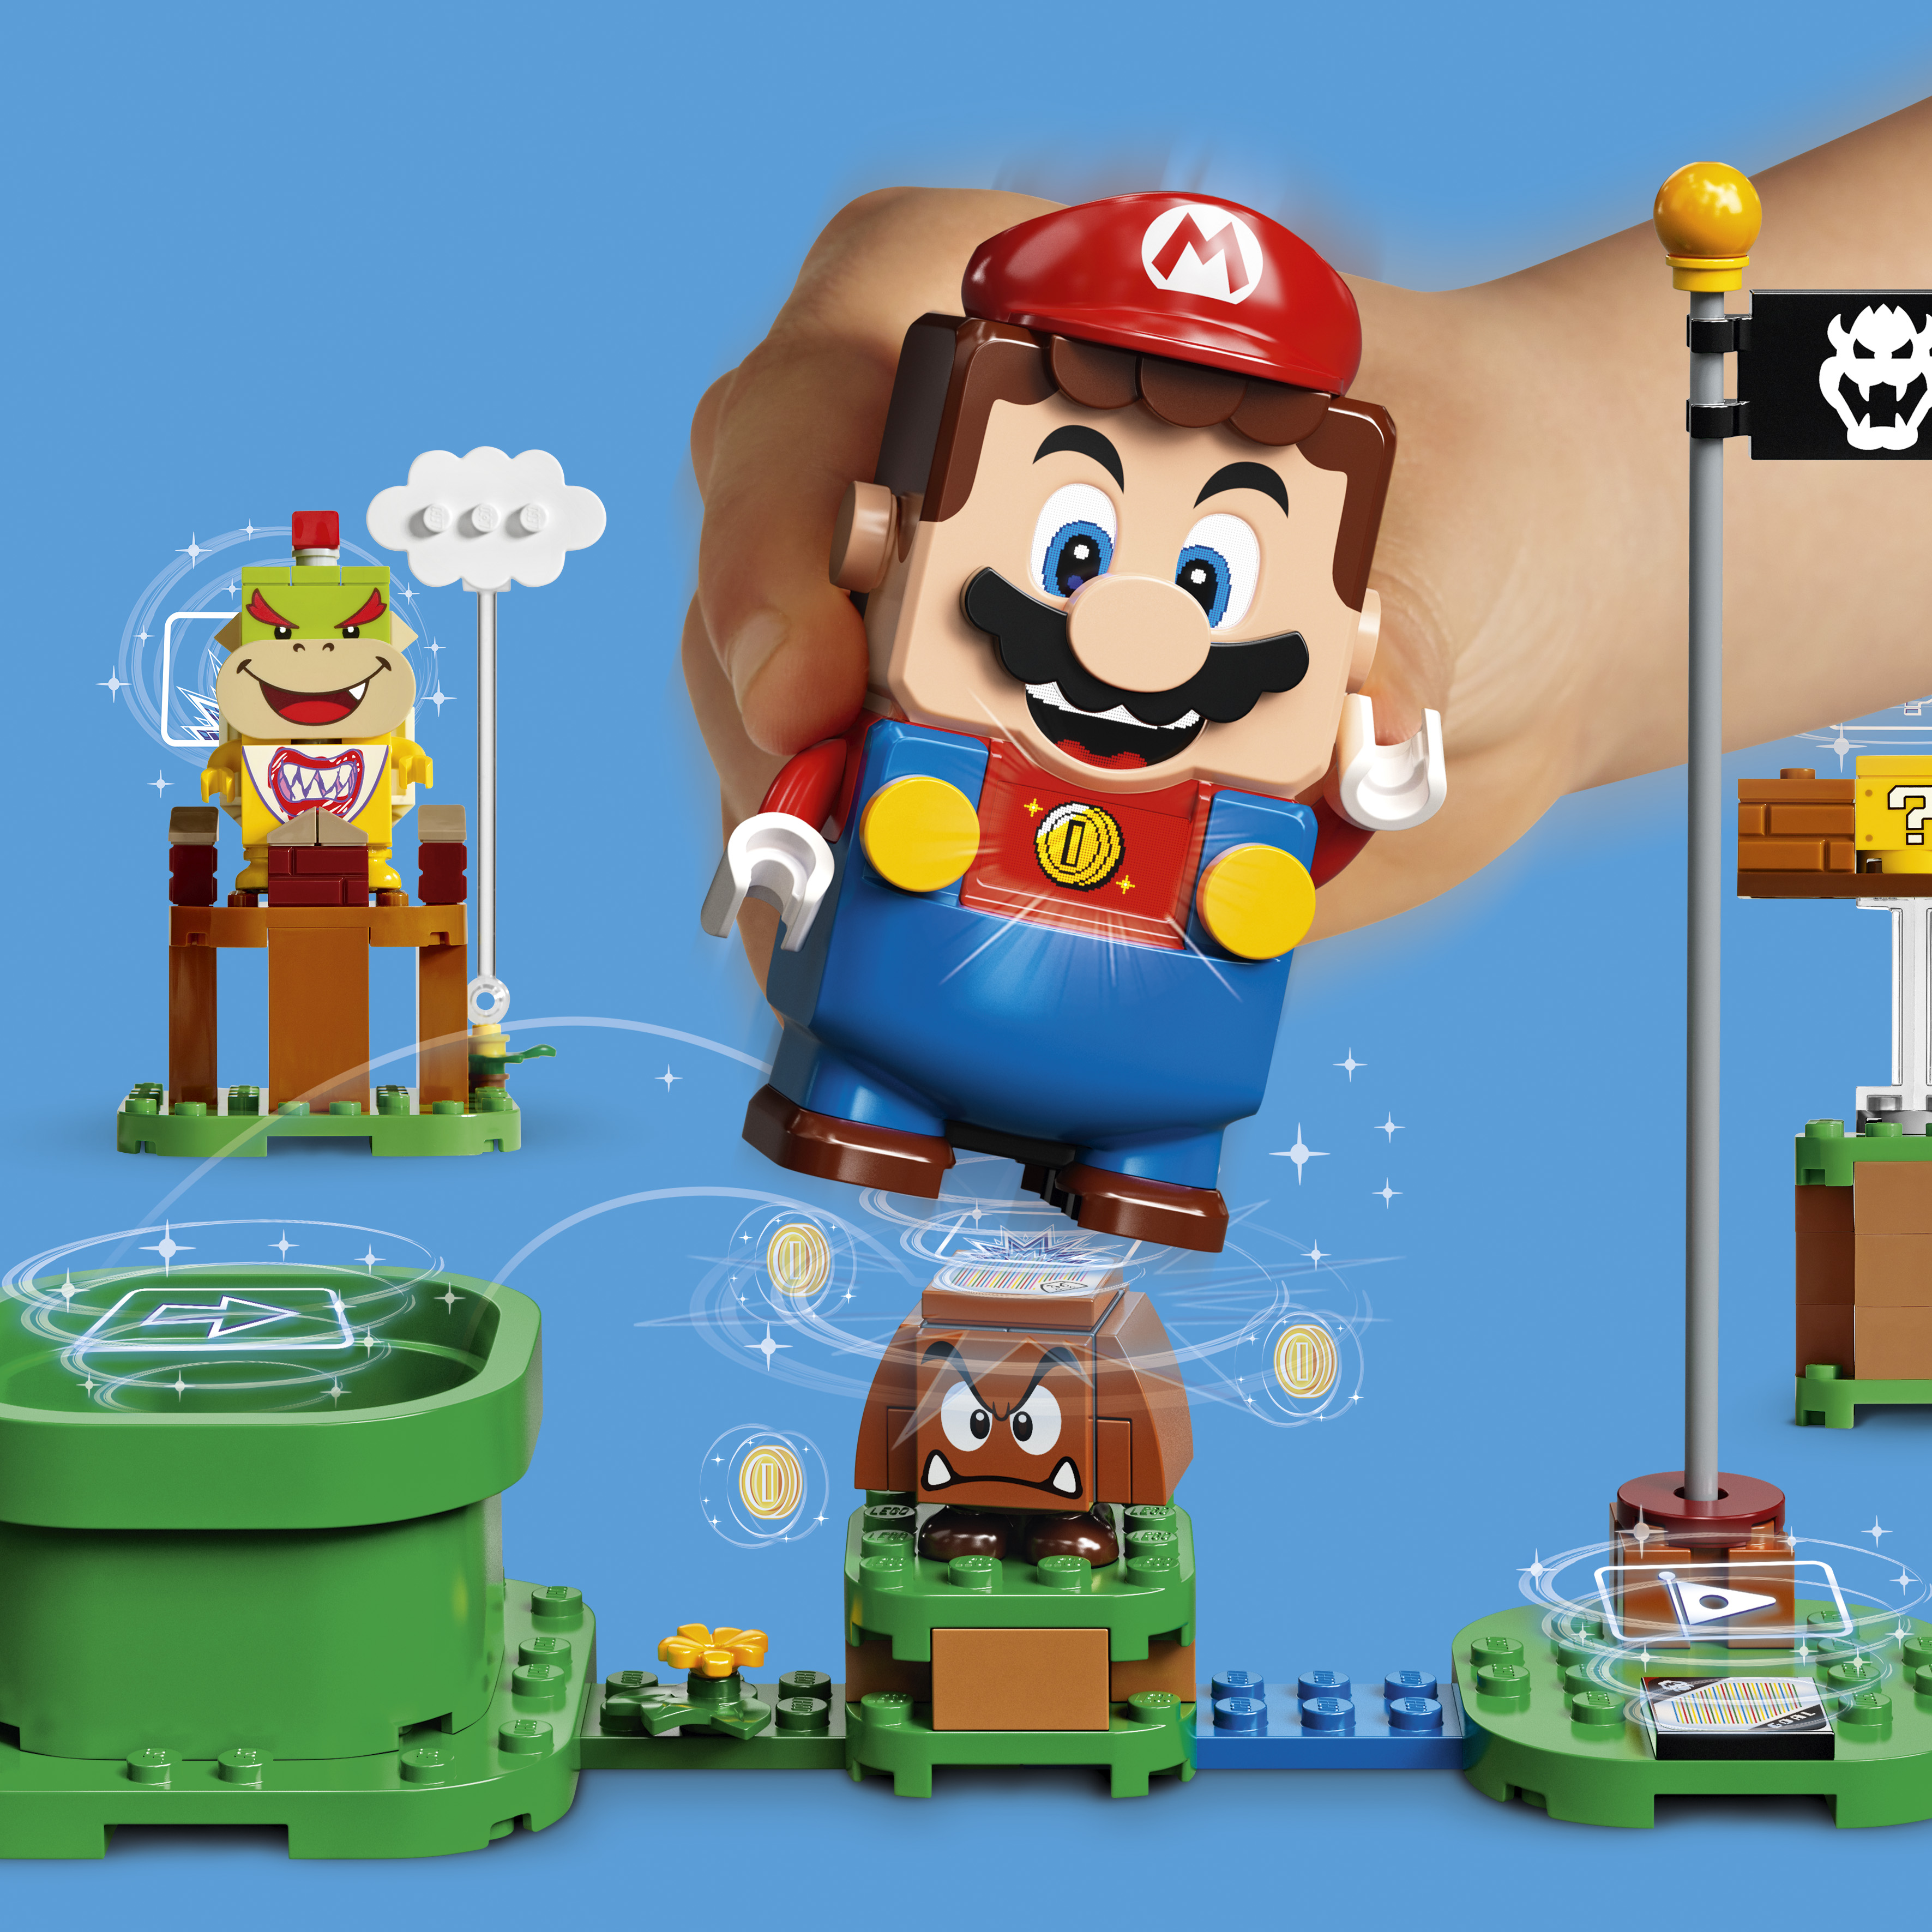 Official Mario Themed Lego To Be Released In Collaboration With